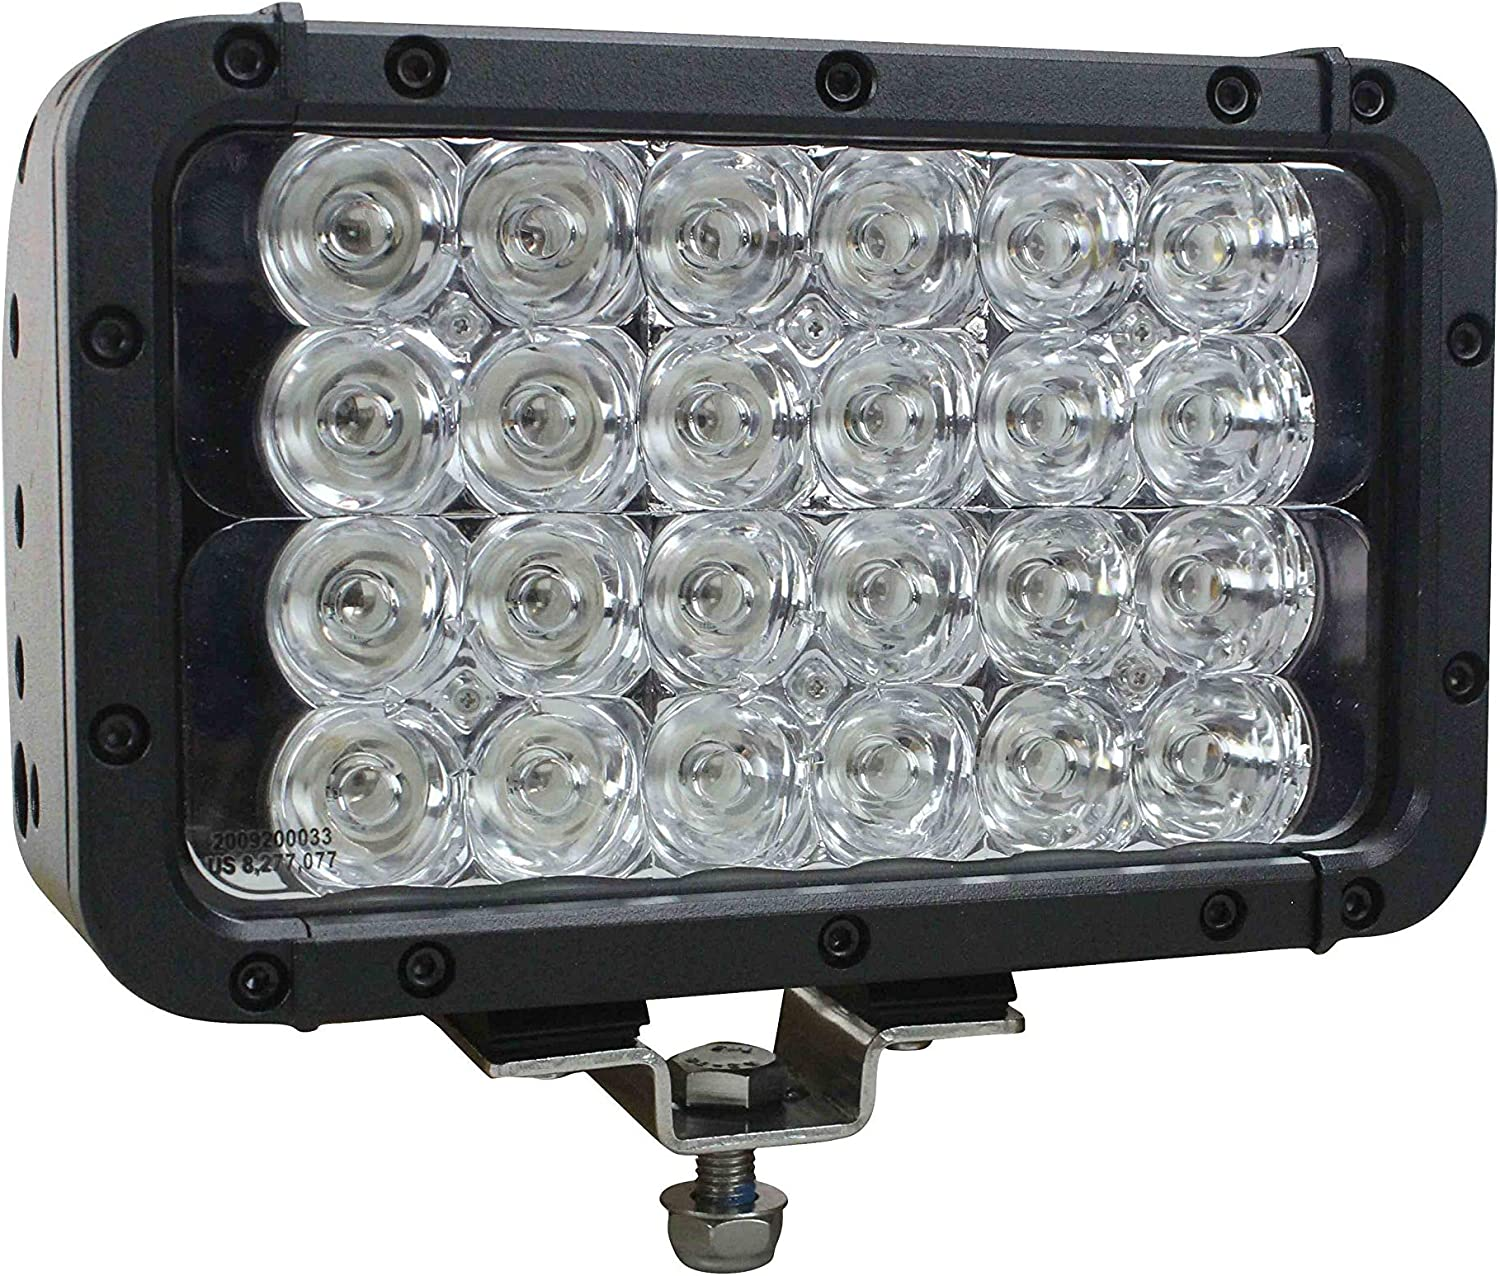 4 Through 24 LEDs Replacement Polycarbonate Lens for The LEDLB Series